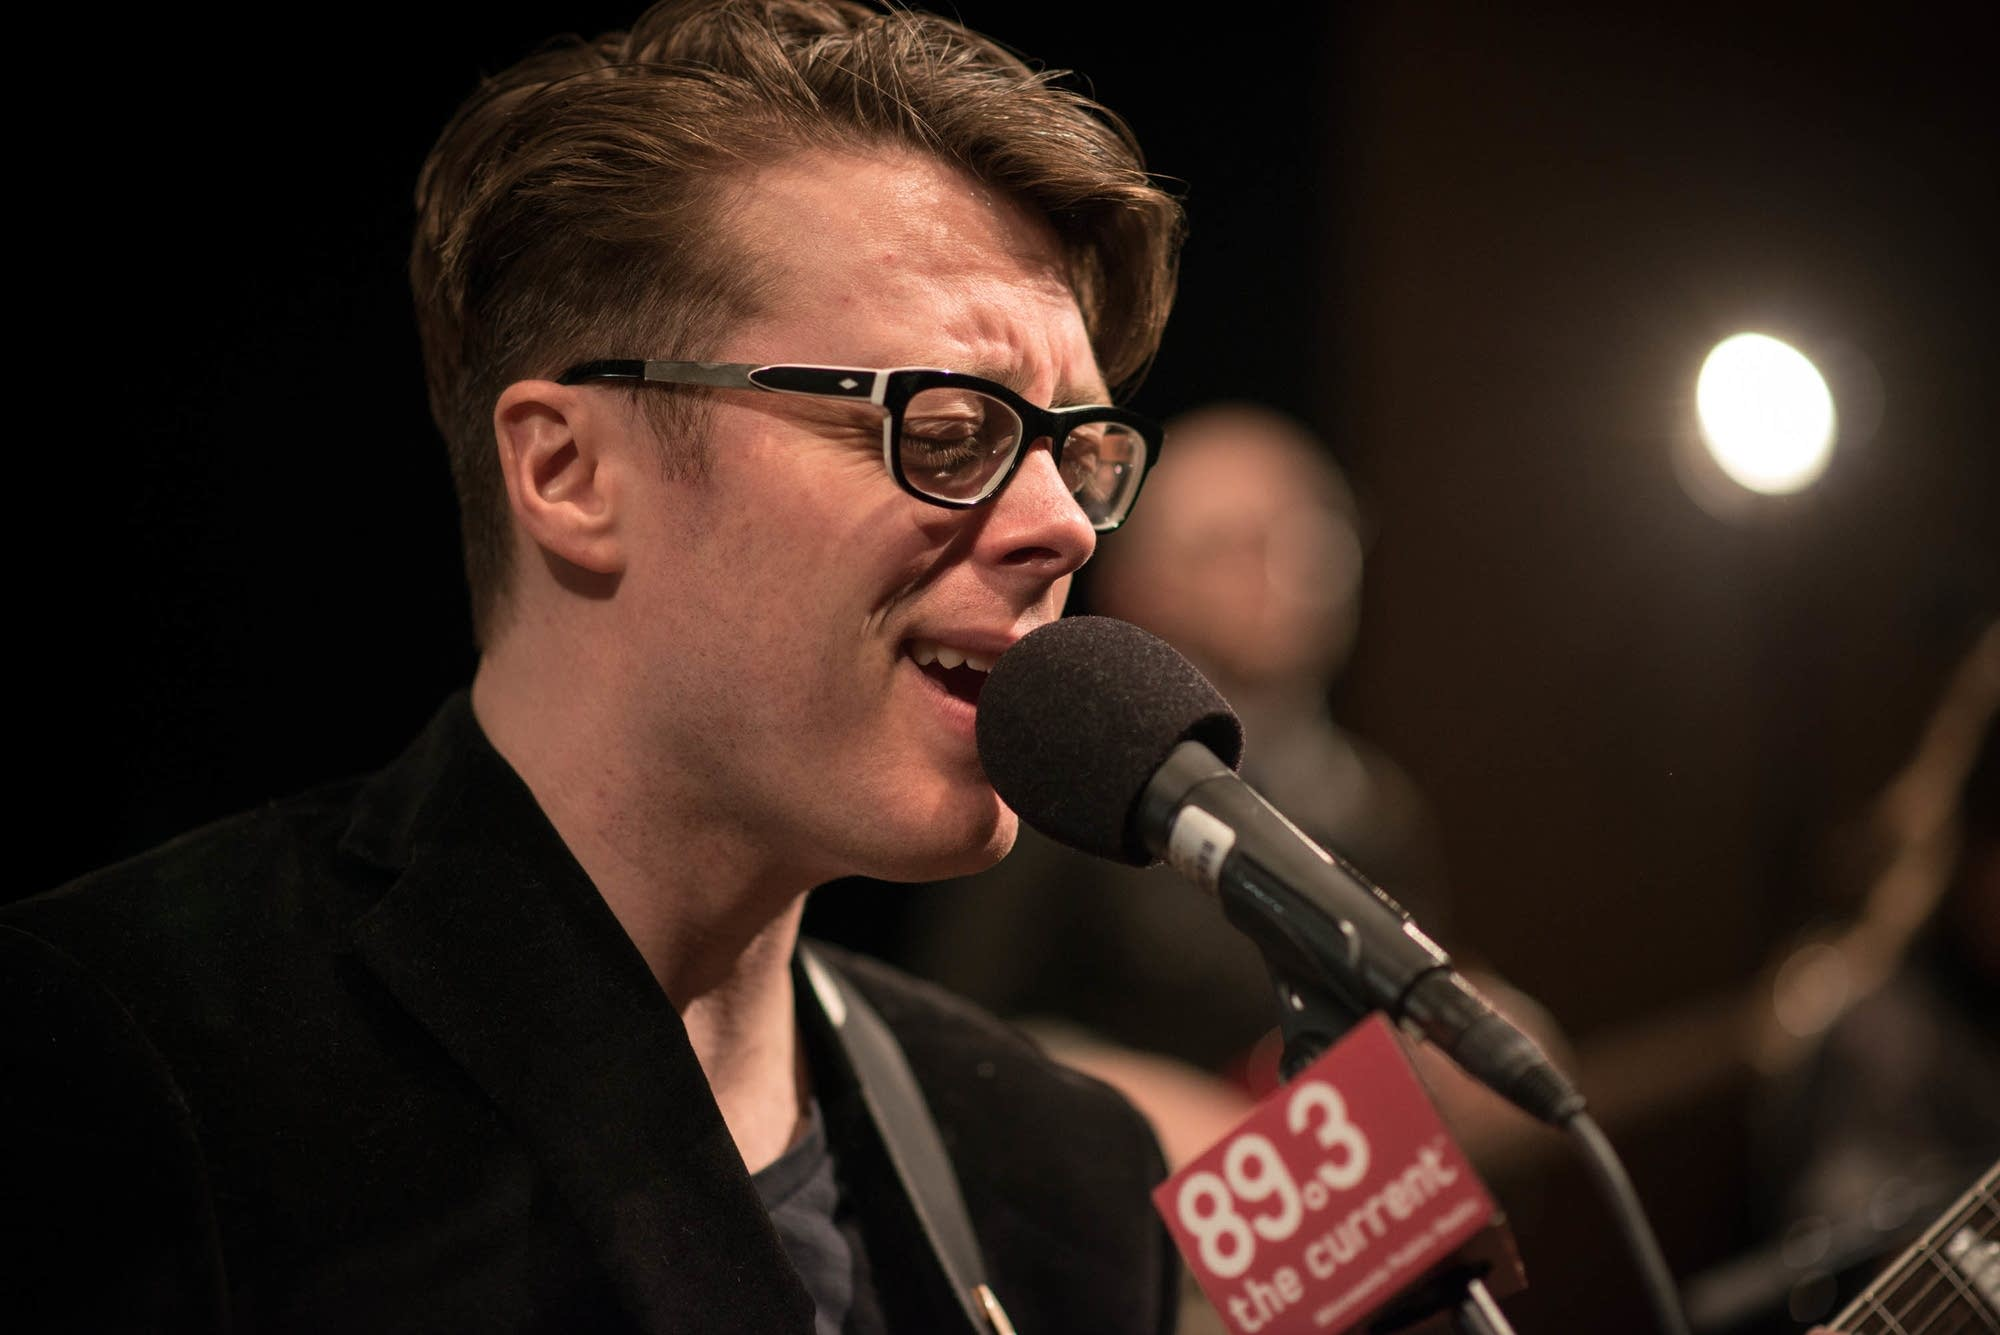 jeremy messersmith forum mic 2